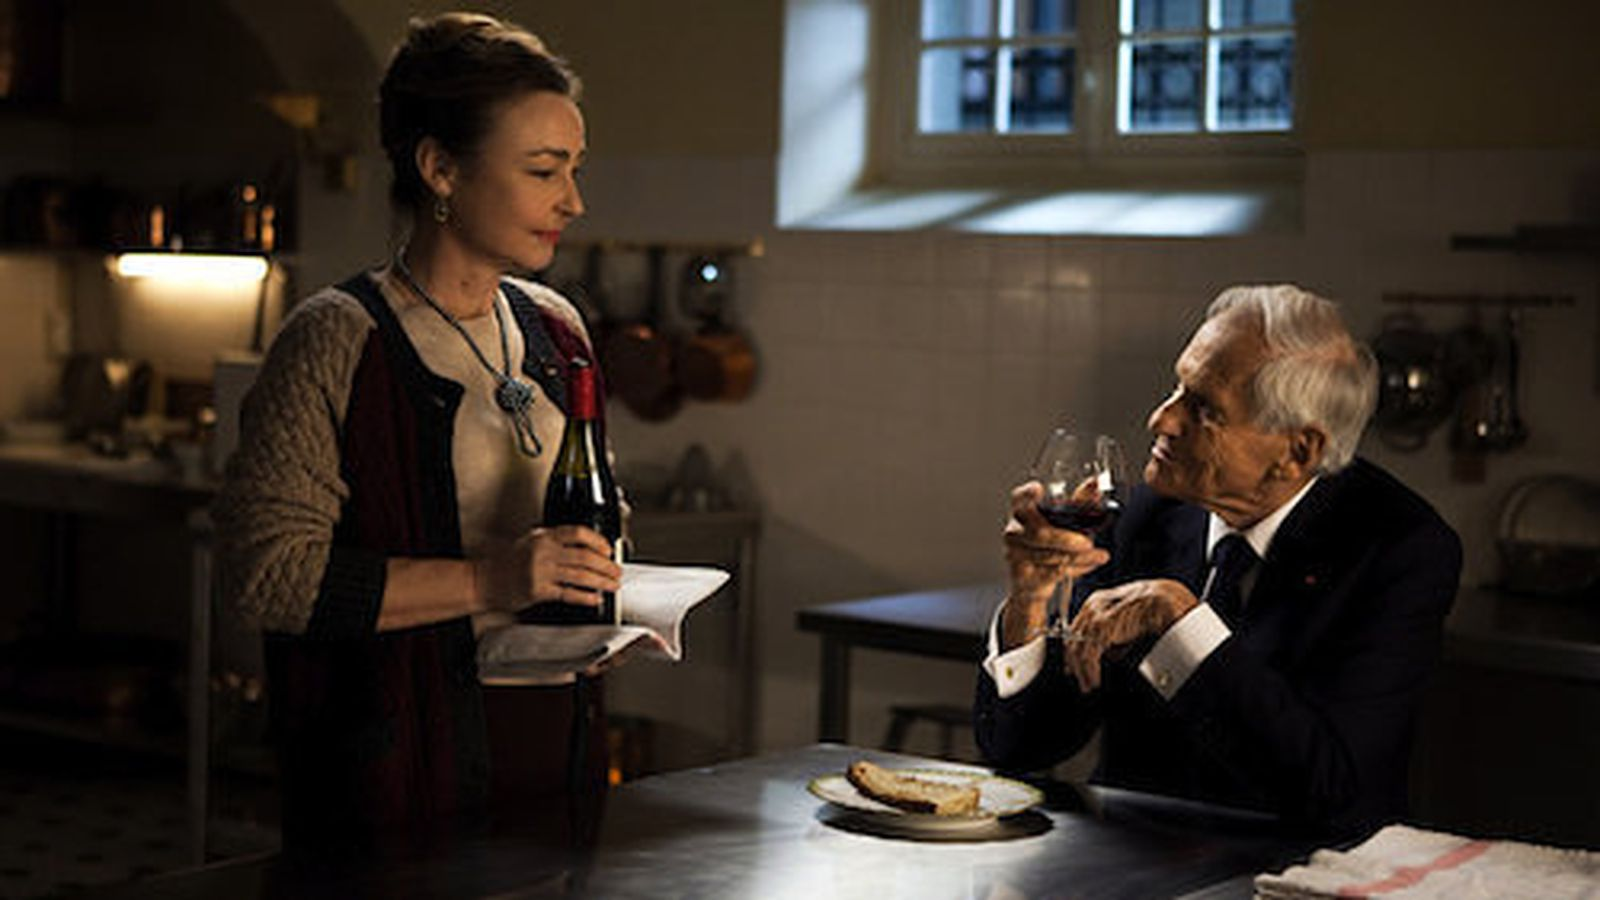 Watch the Trailer for Haute Cuisine, a French Food Film ...